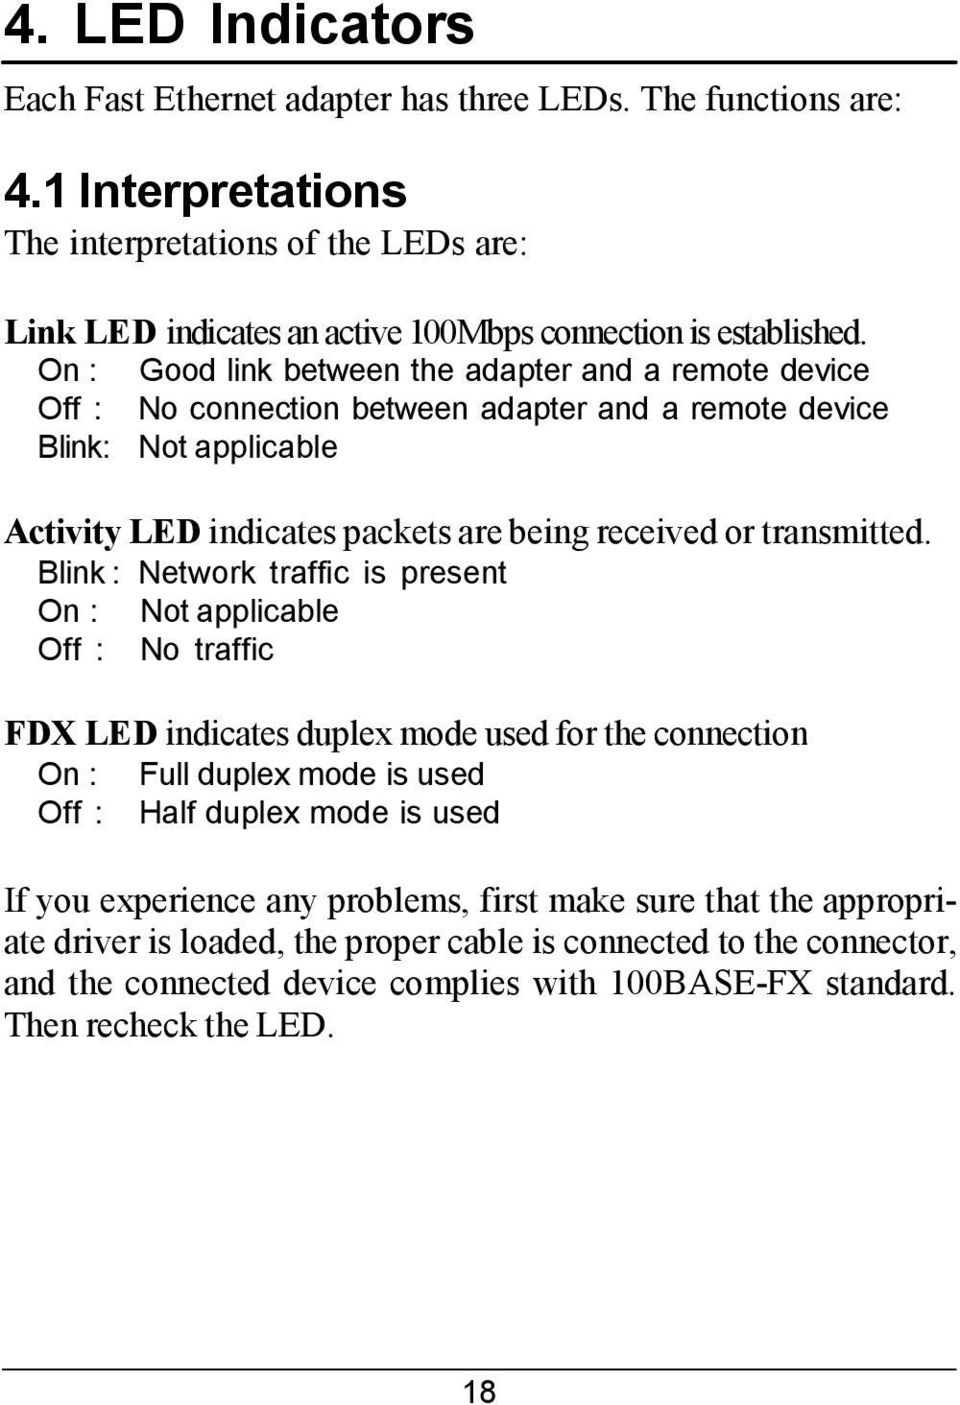 Blink : Network traffic is present On : Not applicable Off : No traffic FDX LED indicates duplex mode used for the connection On : Full duplex mode is used Off : Half duplex mode is used If you